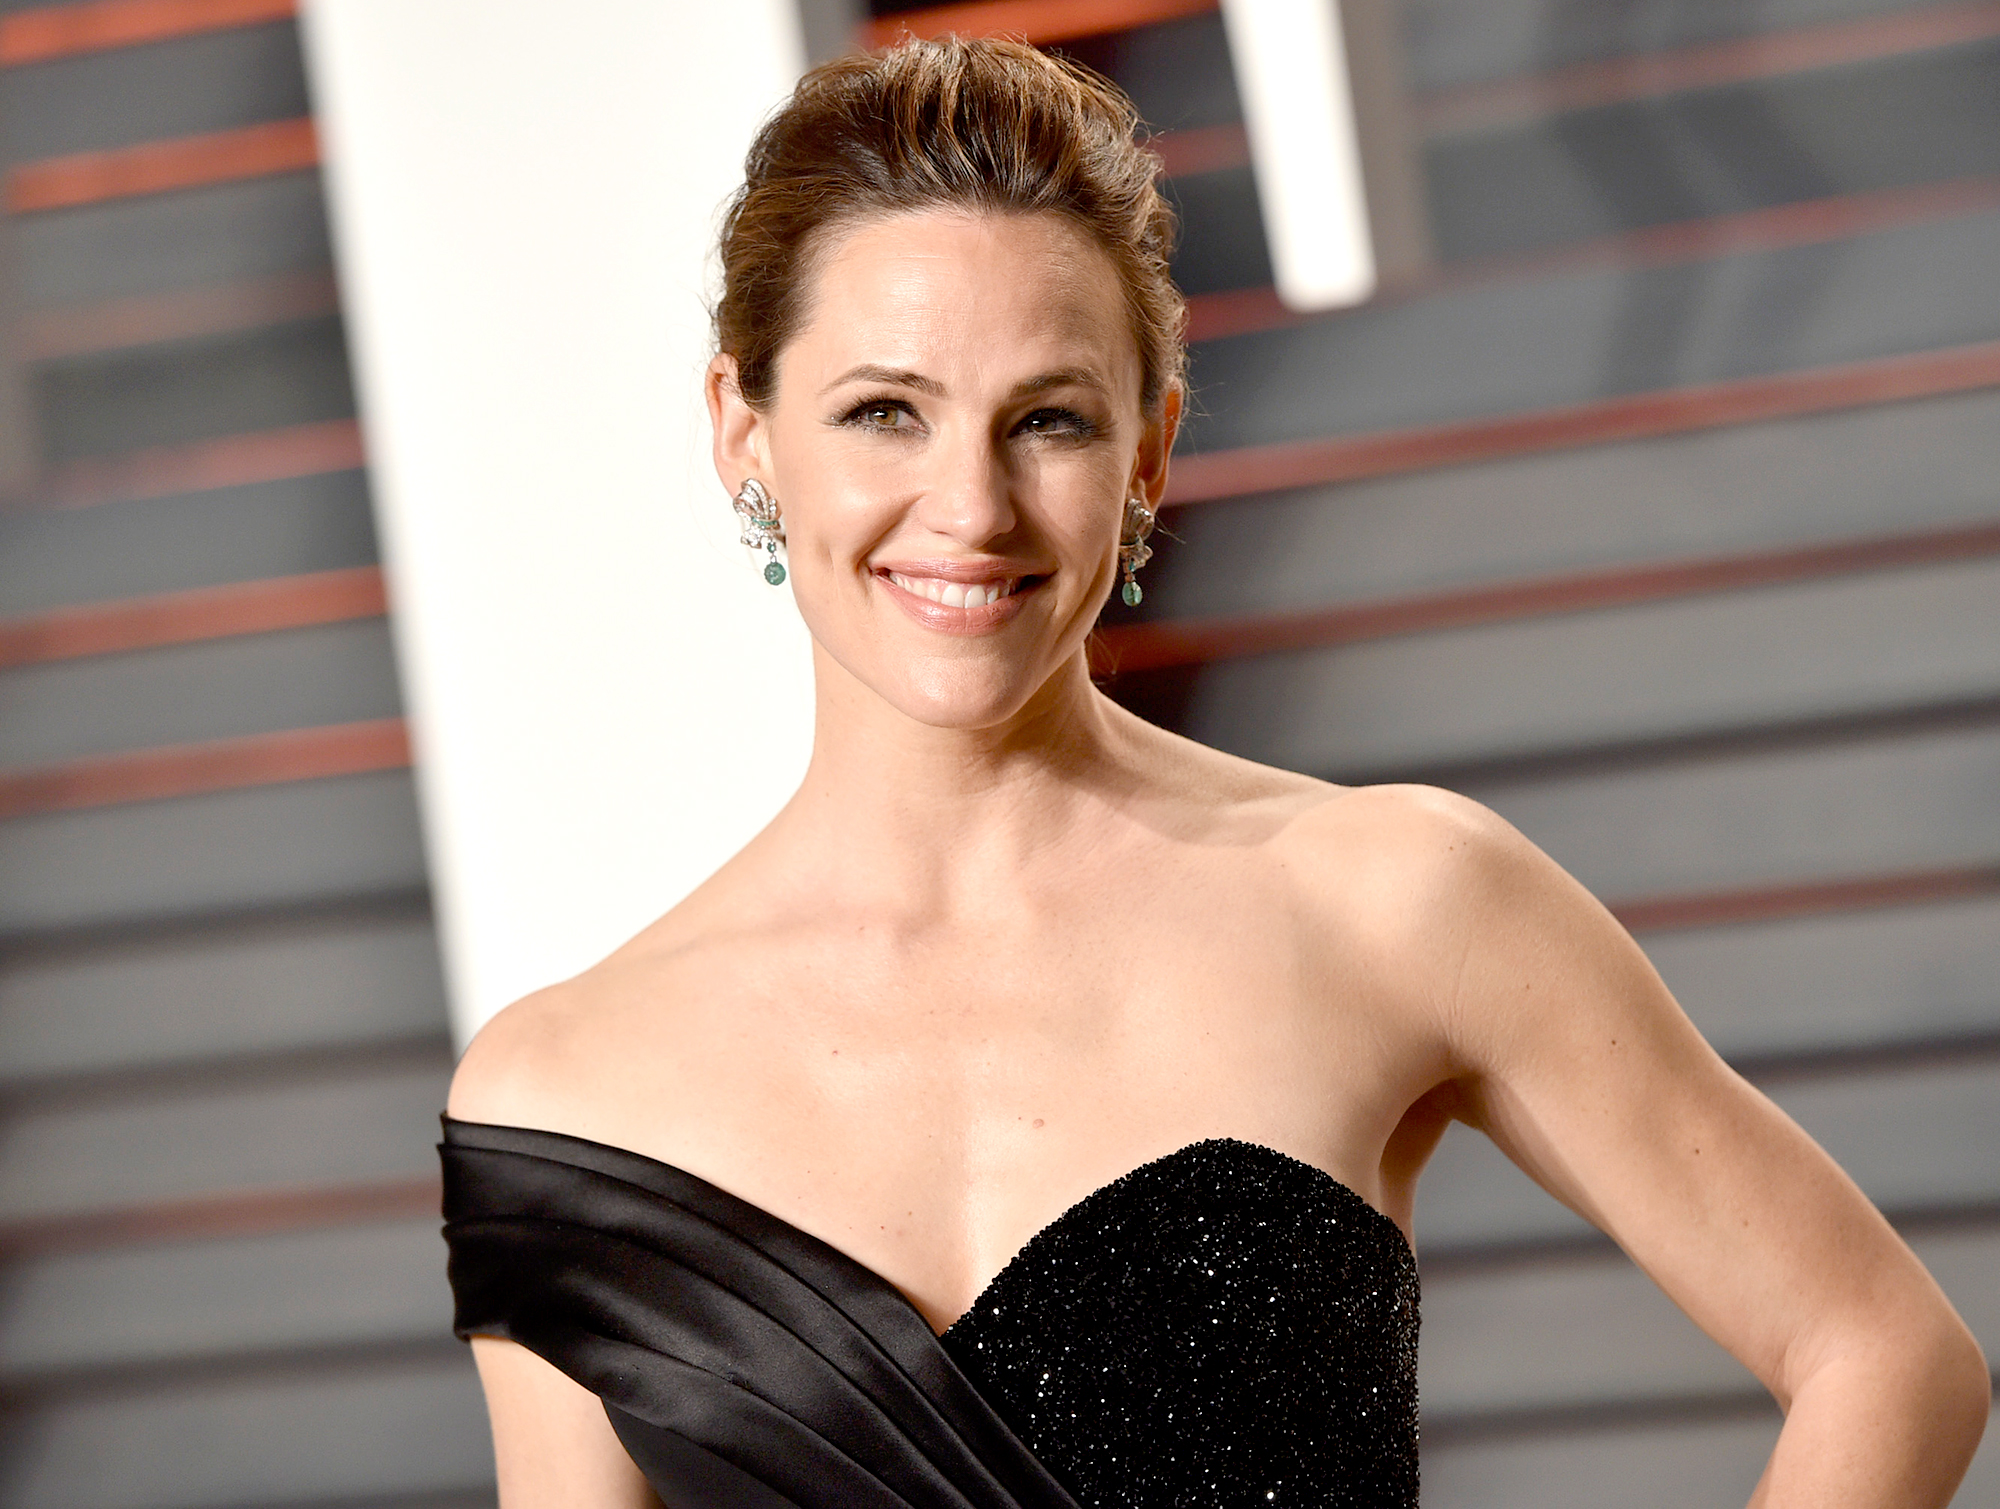 jennifer-garner-dating-history - Lots of costars and a not-so-famous face! Jennifer Garner has boasted a love life filled with long-lasting relationships throughout her time in Hollywood.